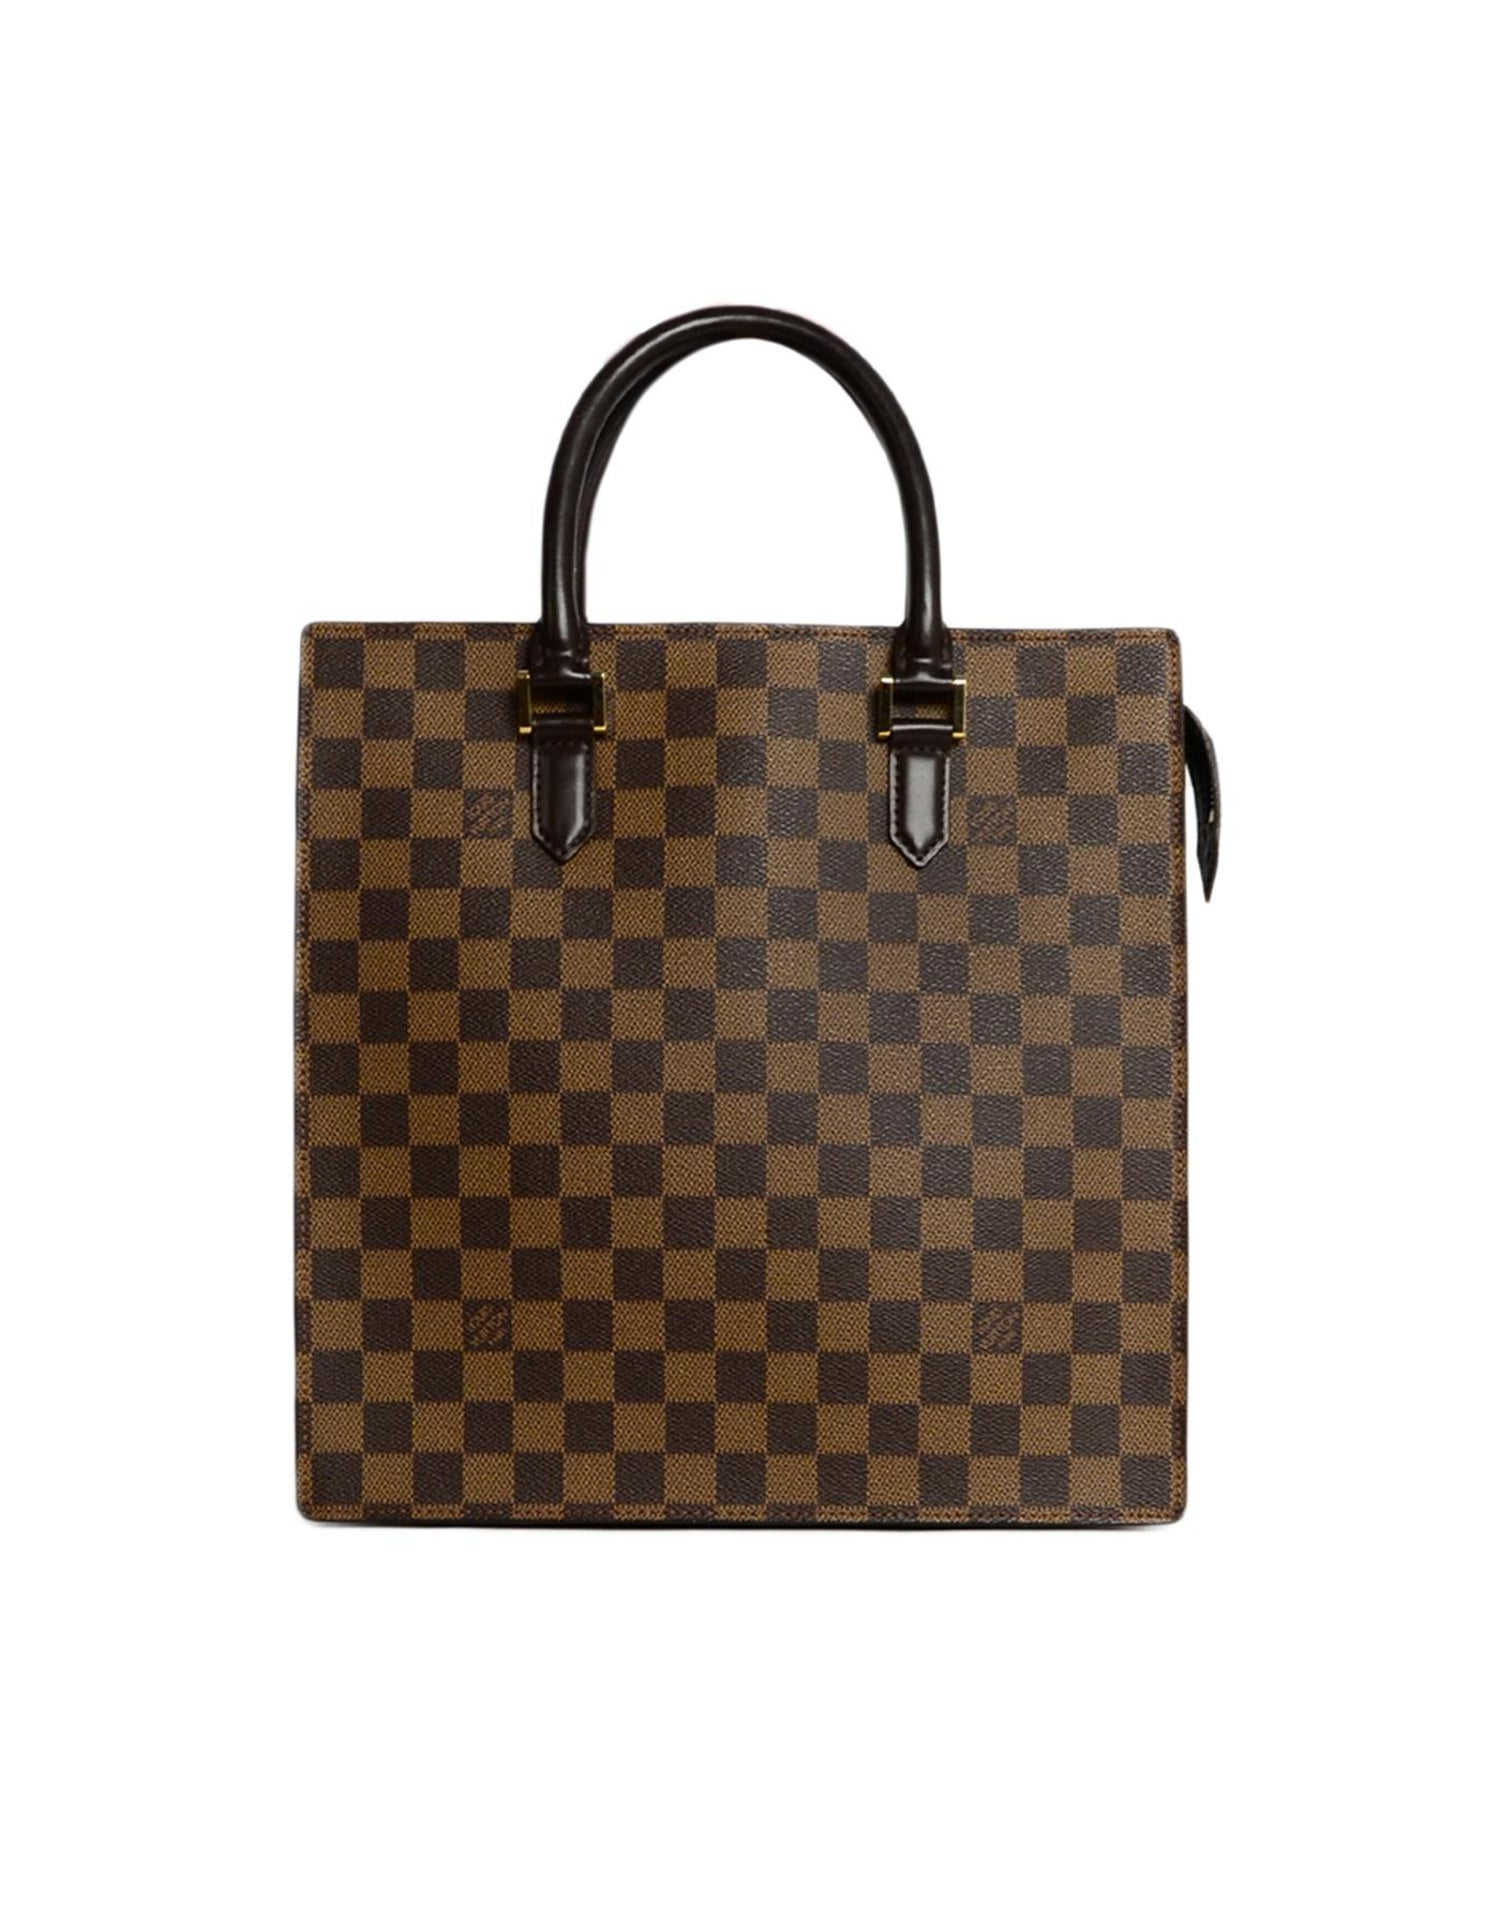 5134eaa88d33 Louis Vuitton Vintage Damier Ebene Coated Canvas Venice PM Sac Plat Handbag  For Sale at 1stdibs